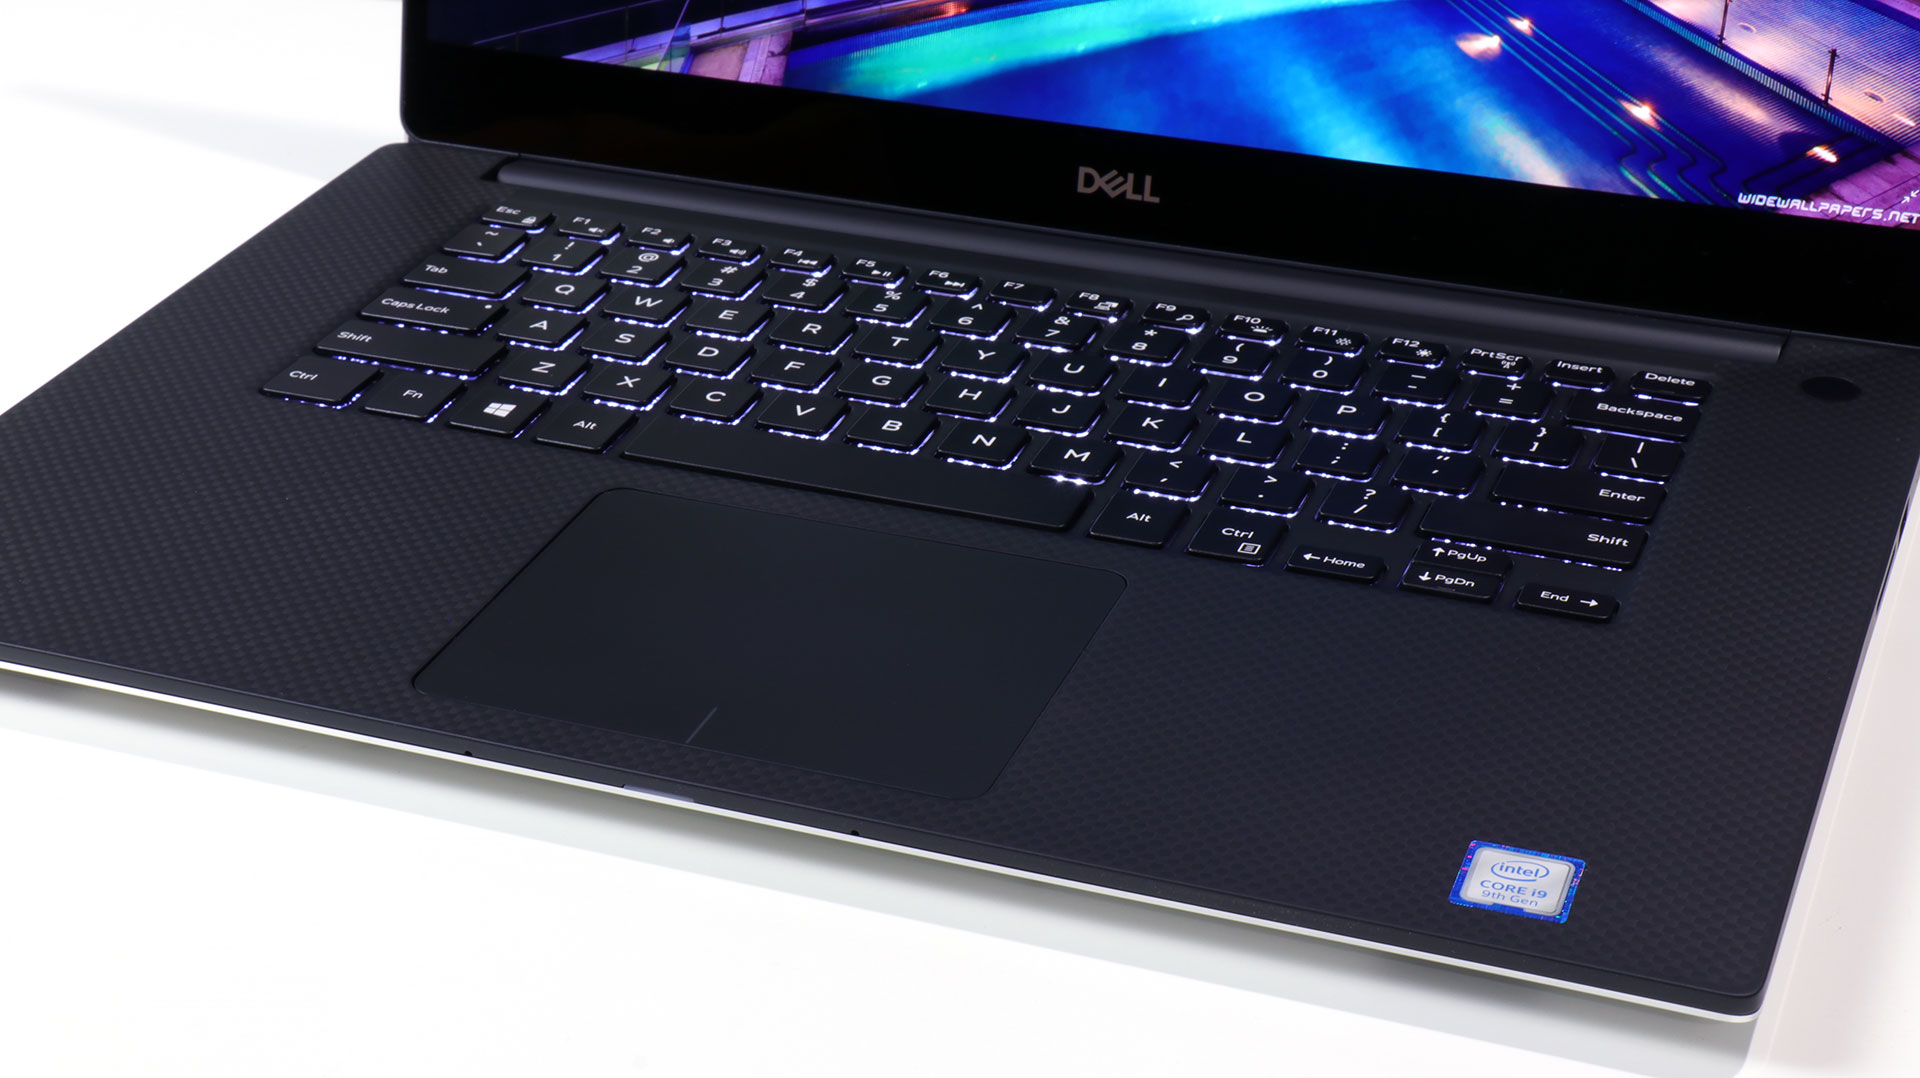 big_dell-xps-15-keyboard-trackpad-top-down.jpg